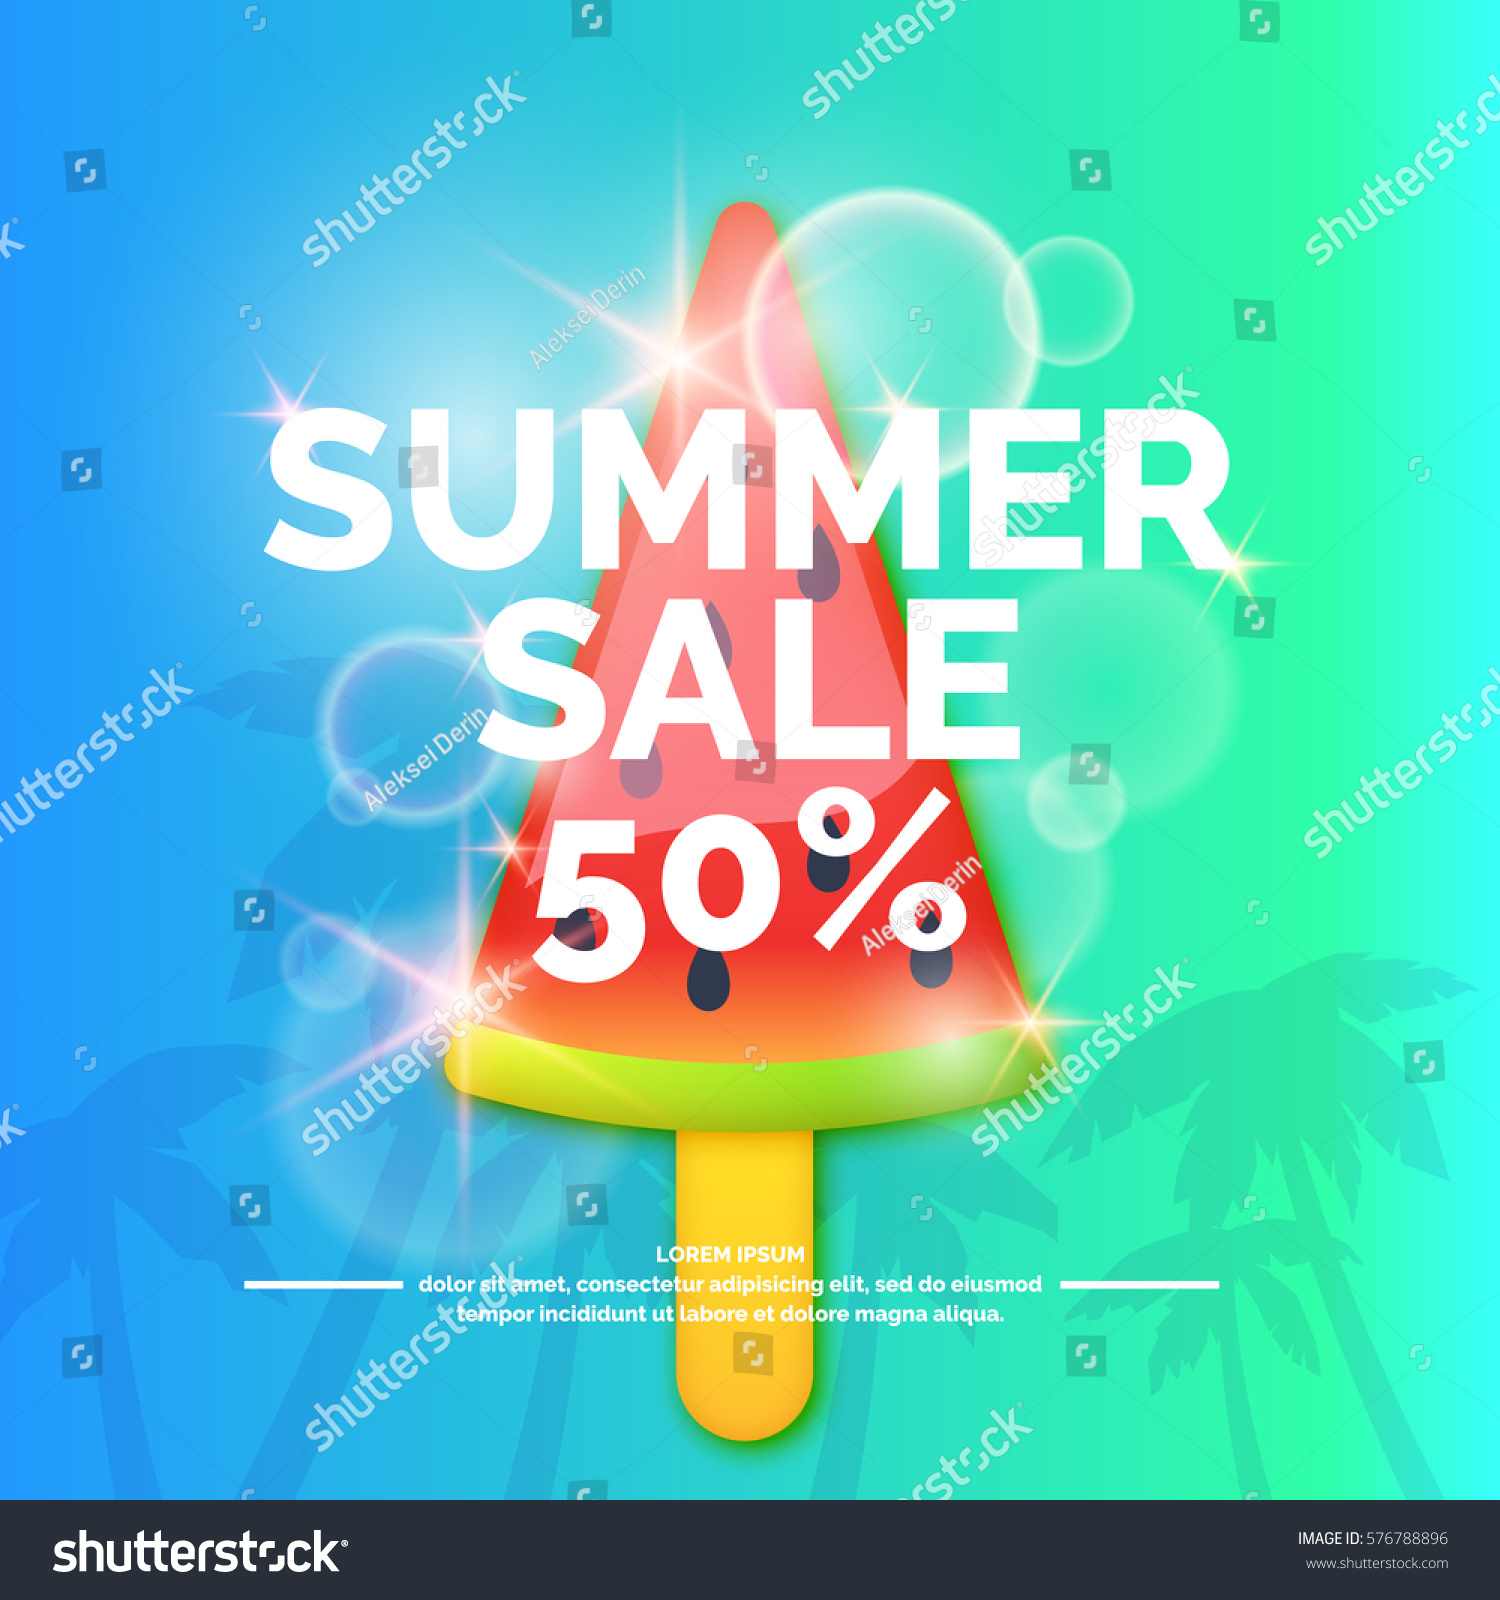 But, rifling through sale racks while getting elbowed by fellow frantic shoppers can be a huge headache. Luckily, we've done the sifting for you and found the hottest summer sale items. We're talking the best marked down fashion and accessories available online.